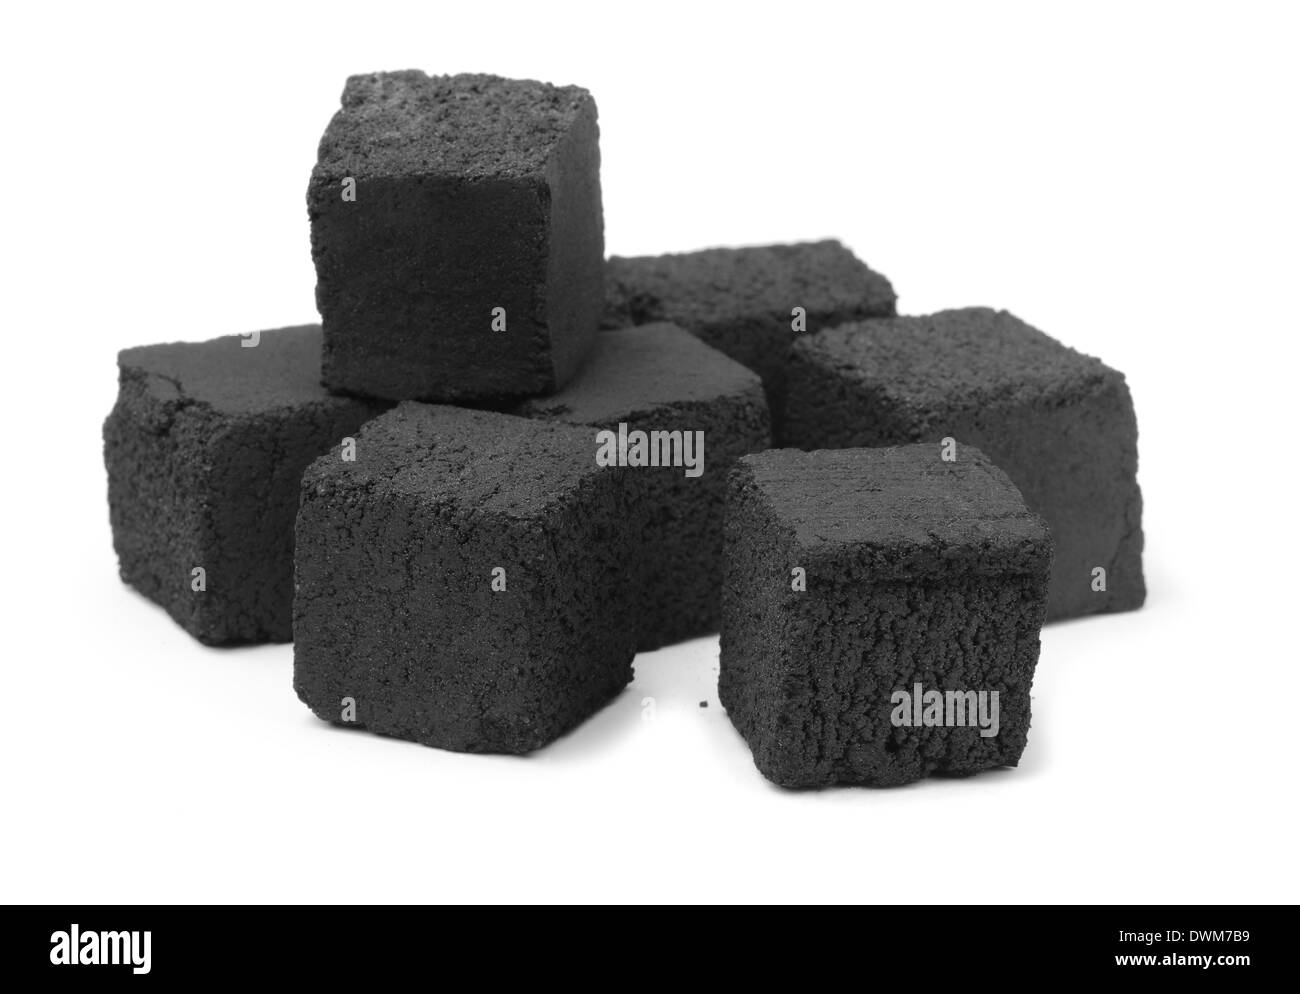 Group of charcoal cubes isolated on white - Stock Image